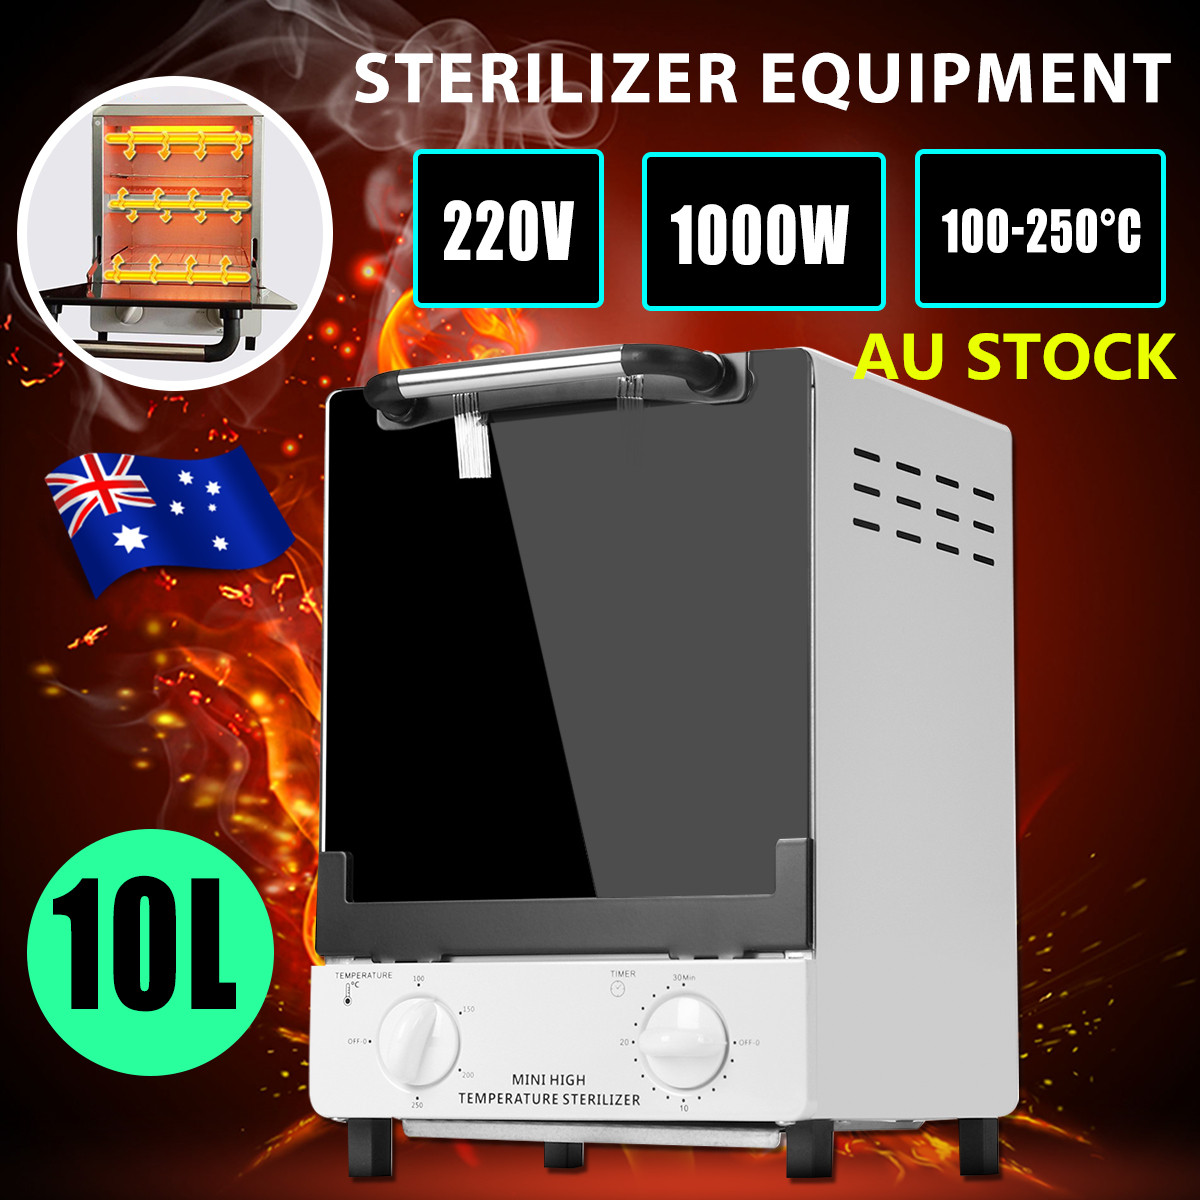 10L 900W Double Deck Nail Tools Heat Sterilizer Autoclave Spa Dental Medical High Temperature Sterilizer 220V